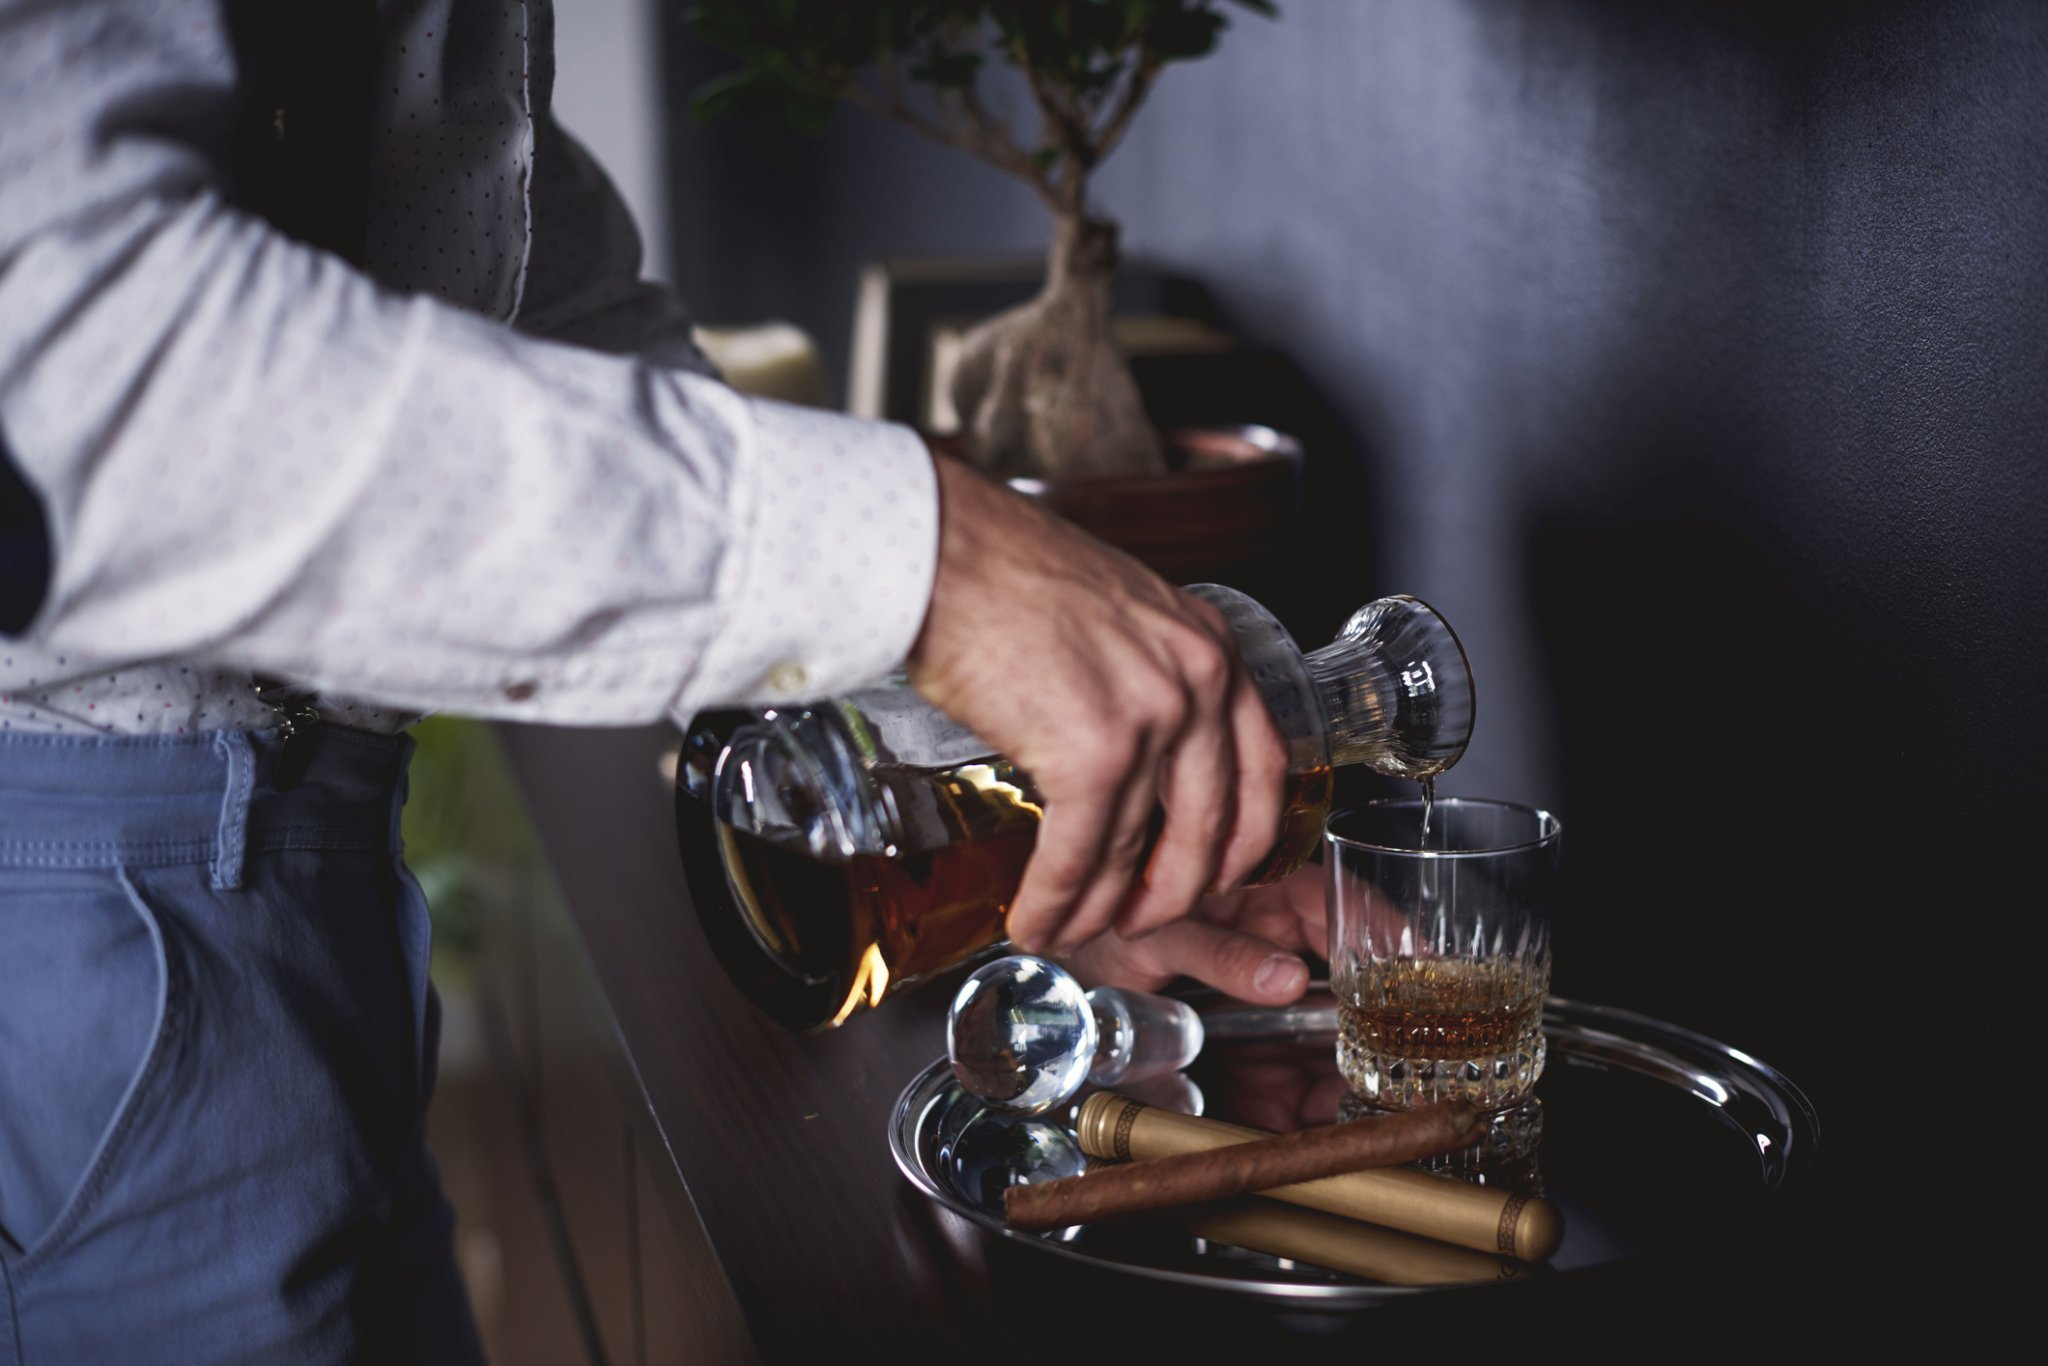 The cocktails every man should know how to make